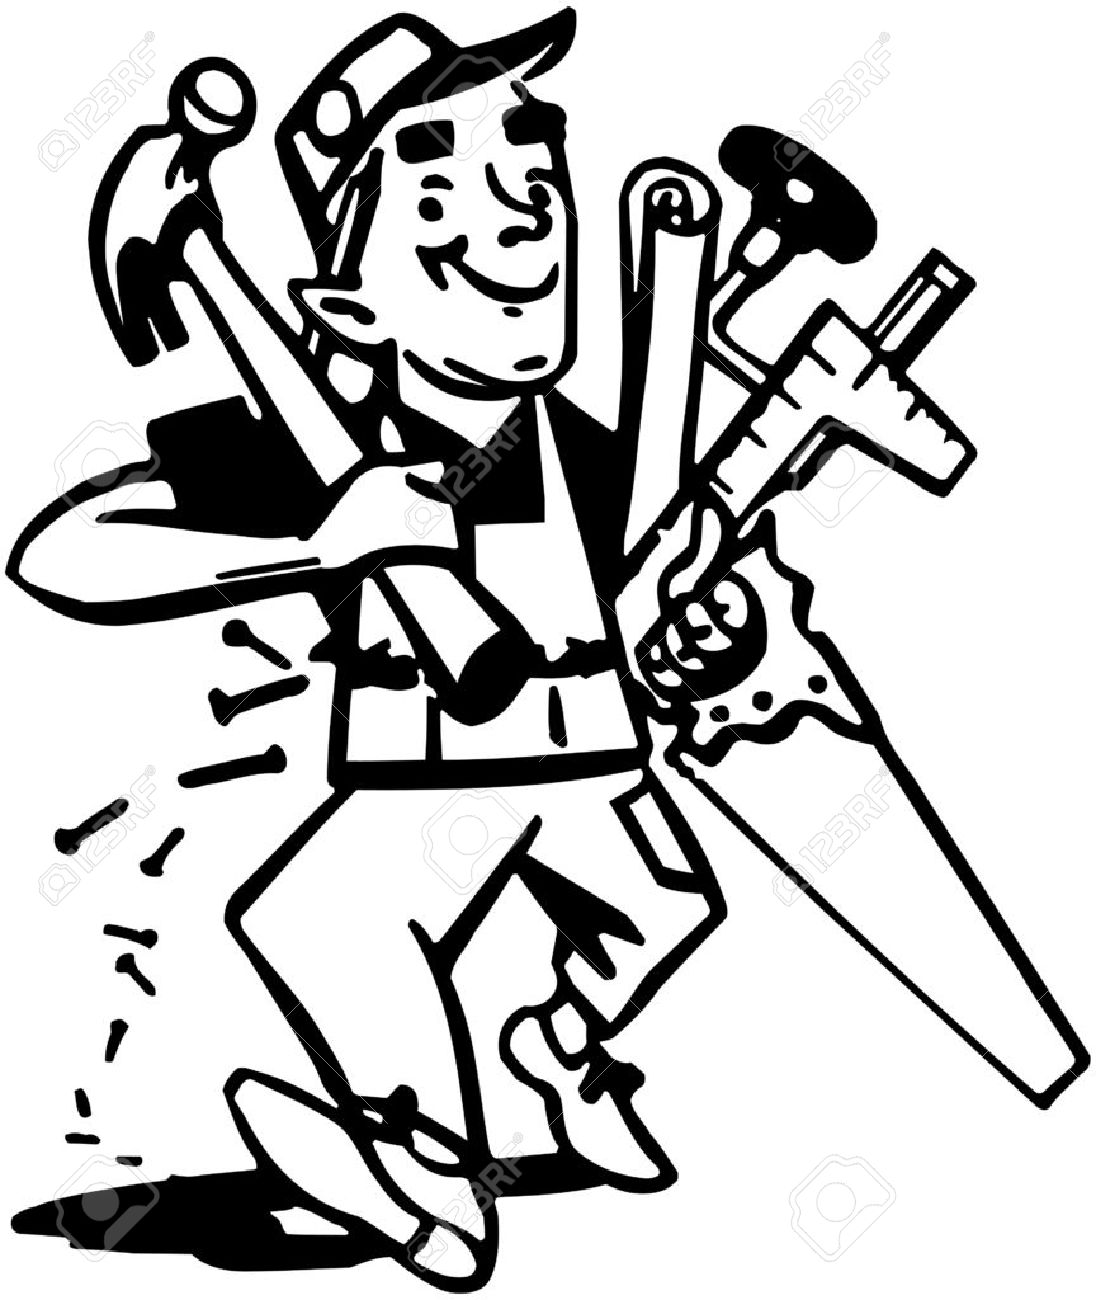 Related Keywords & Suggestions for Carpenter Clip Art Black And White